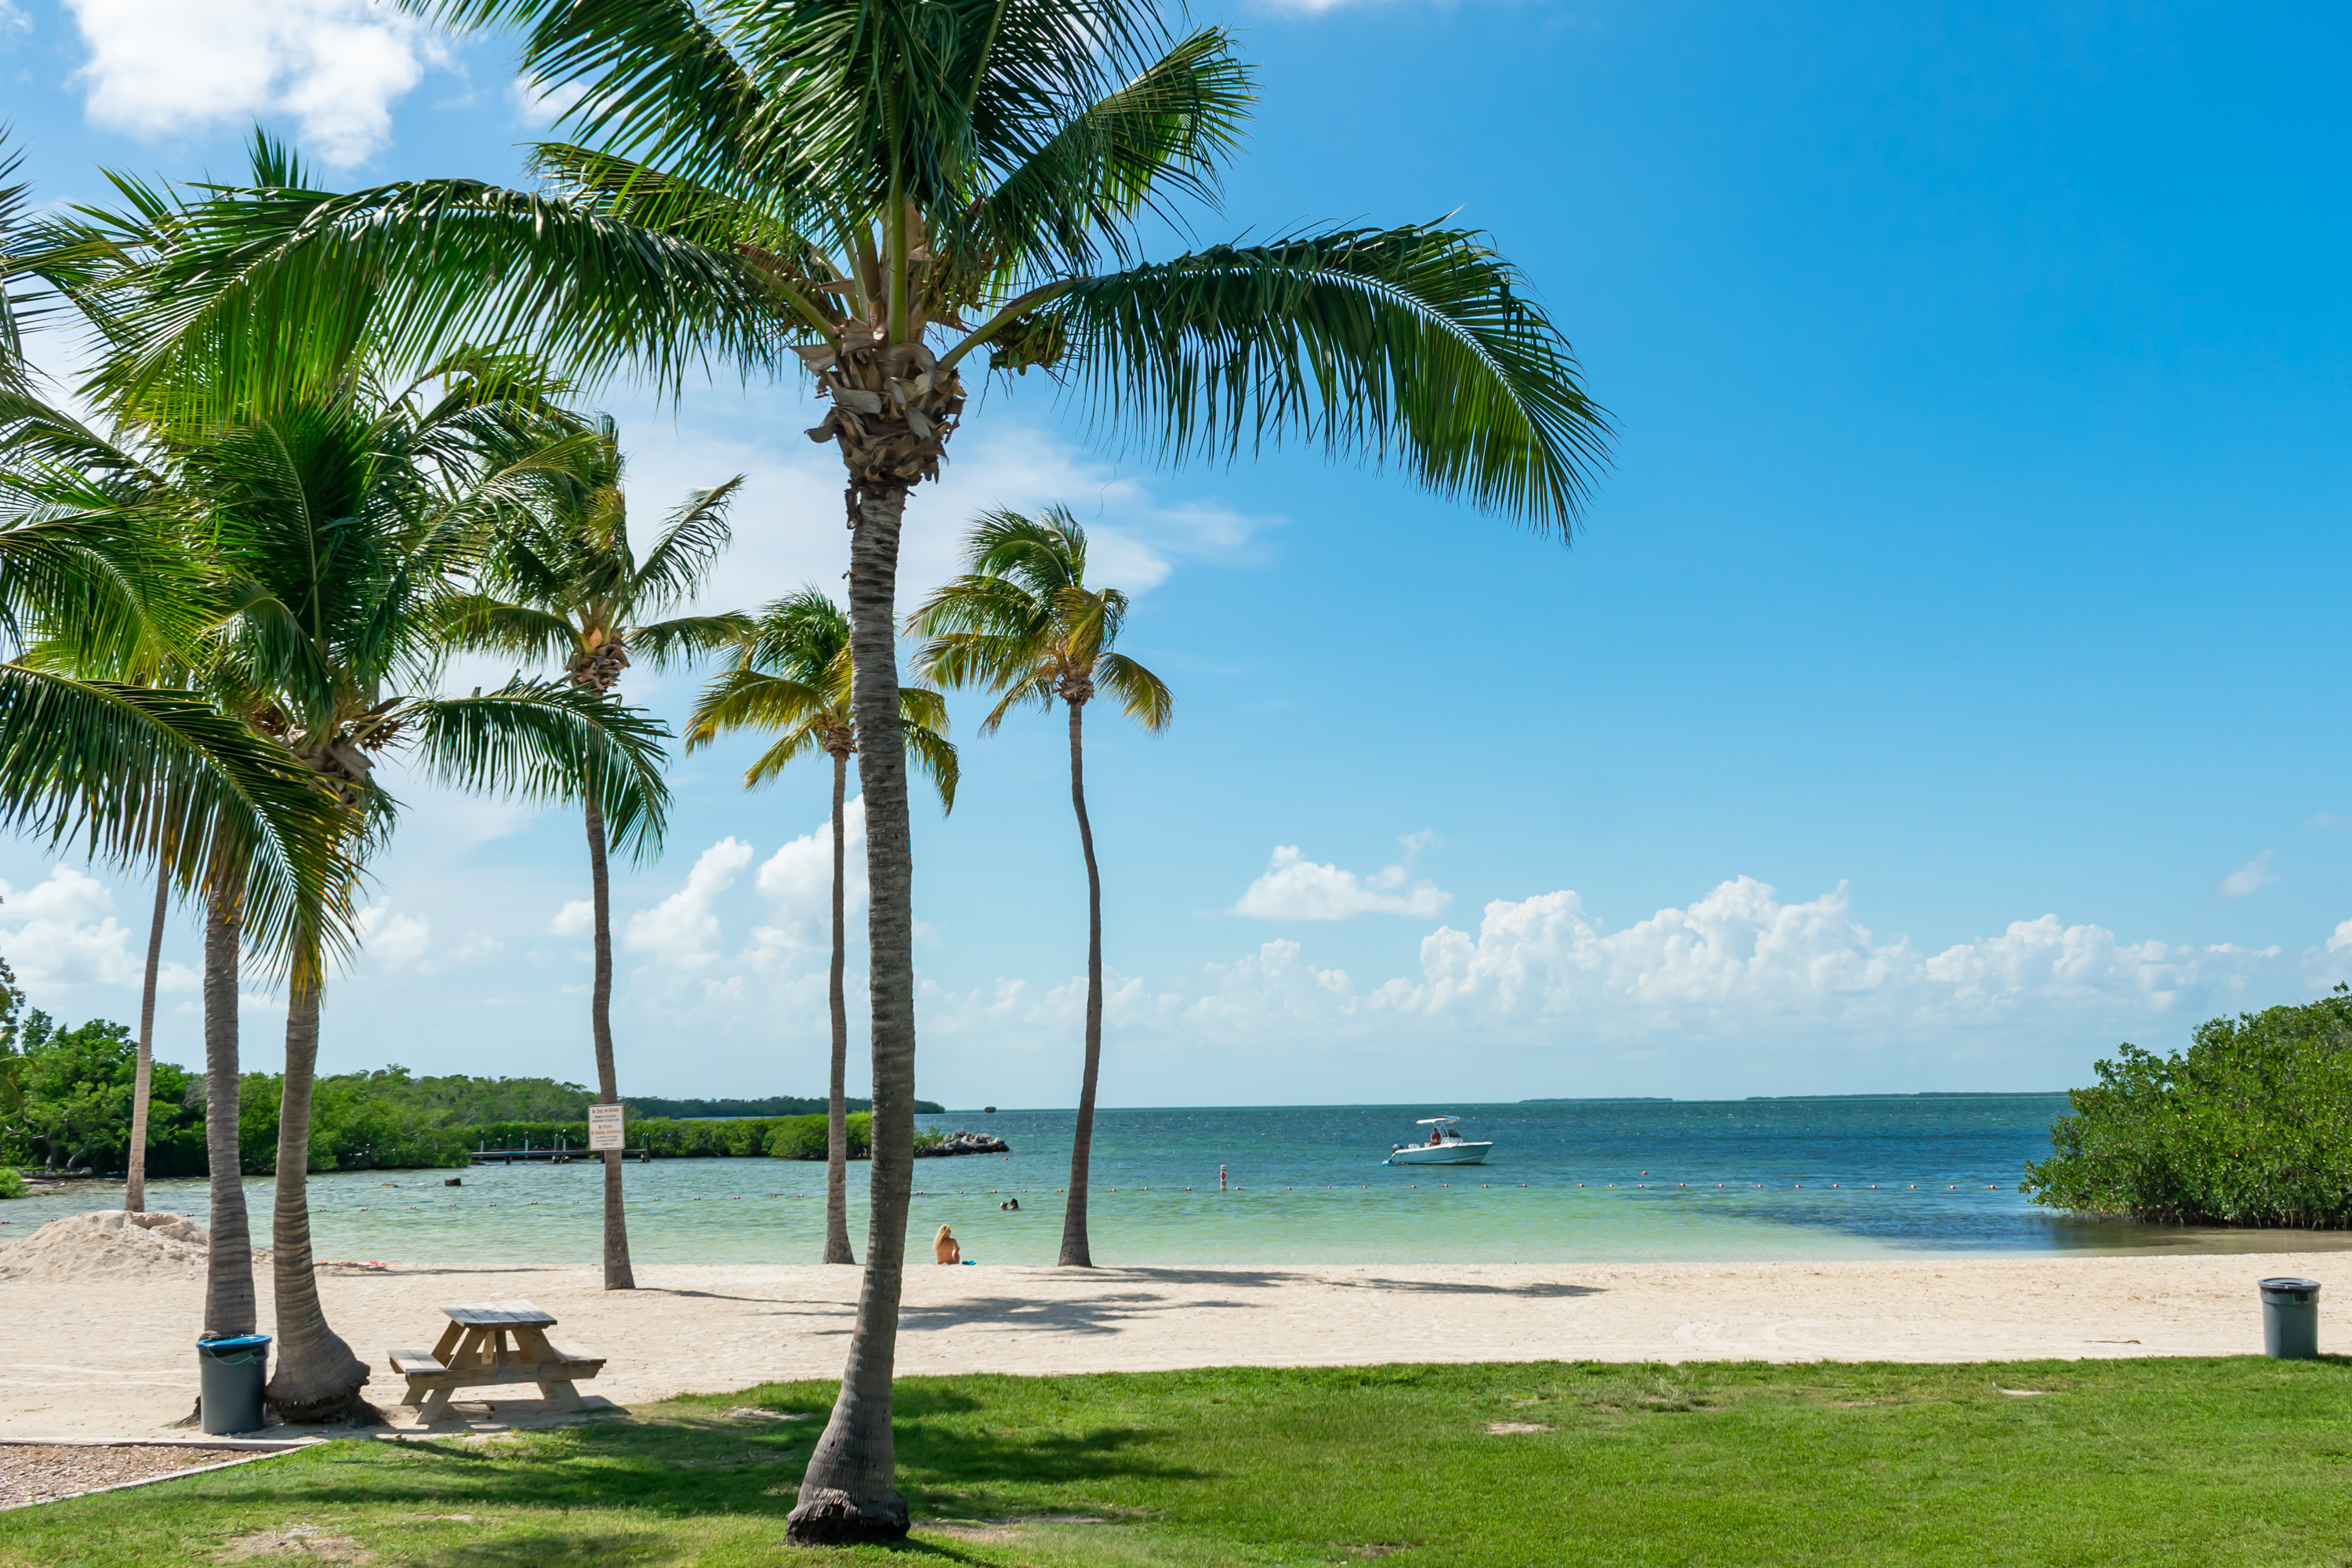 Beach at Founders Park, Islamorada